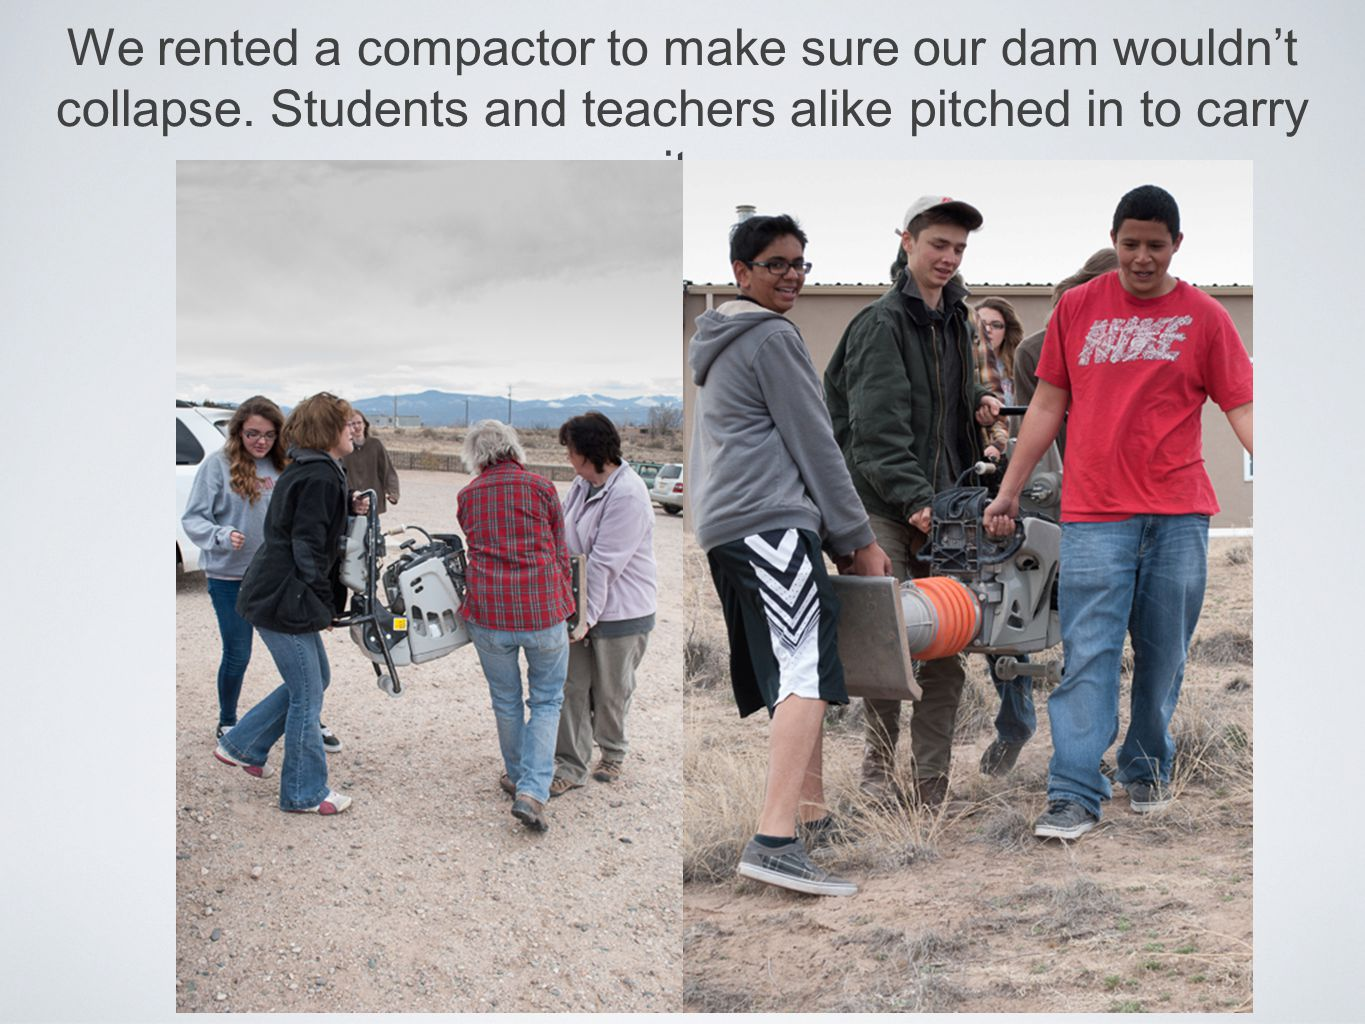 We rented a compactor to make sure our dam wouldn't collapse. Students and teachers alike pitched in to carry it.